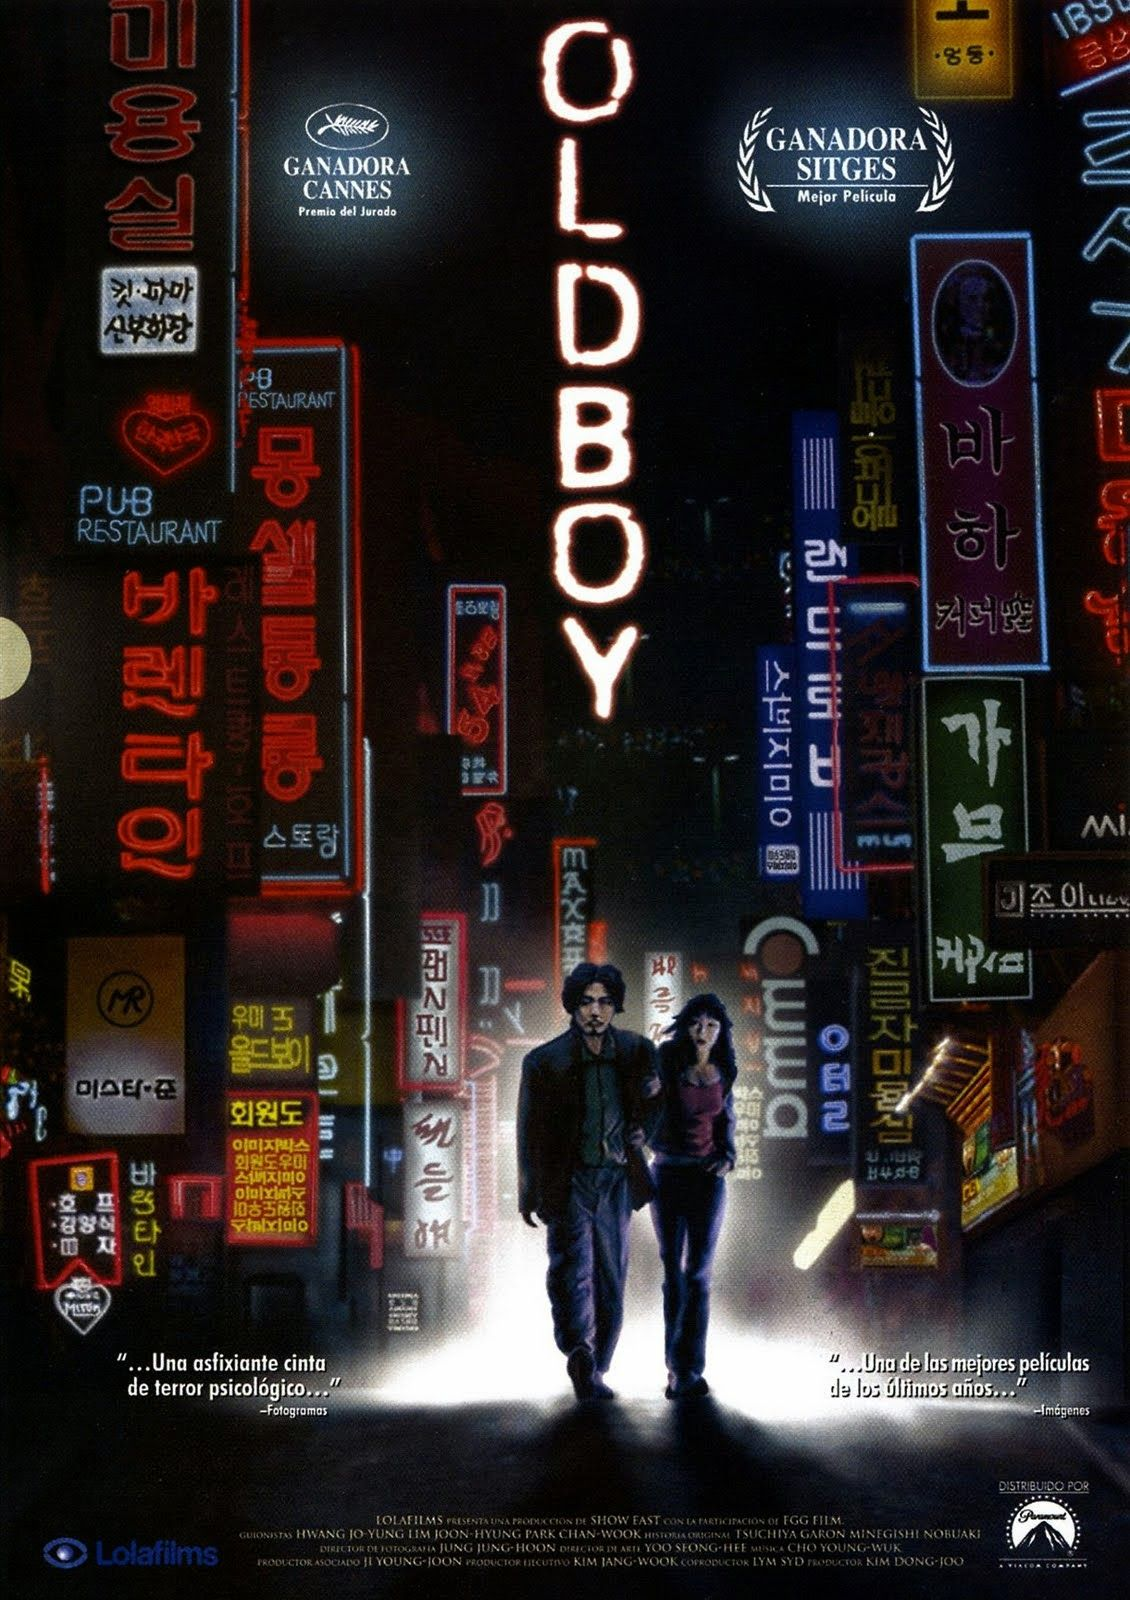 Oldboy (2003) | Oldboy, Top film, Movie stats